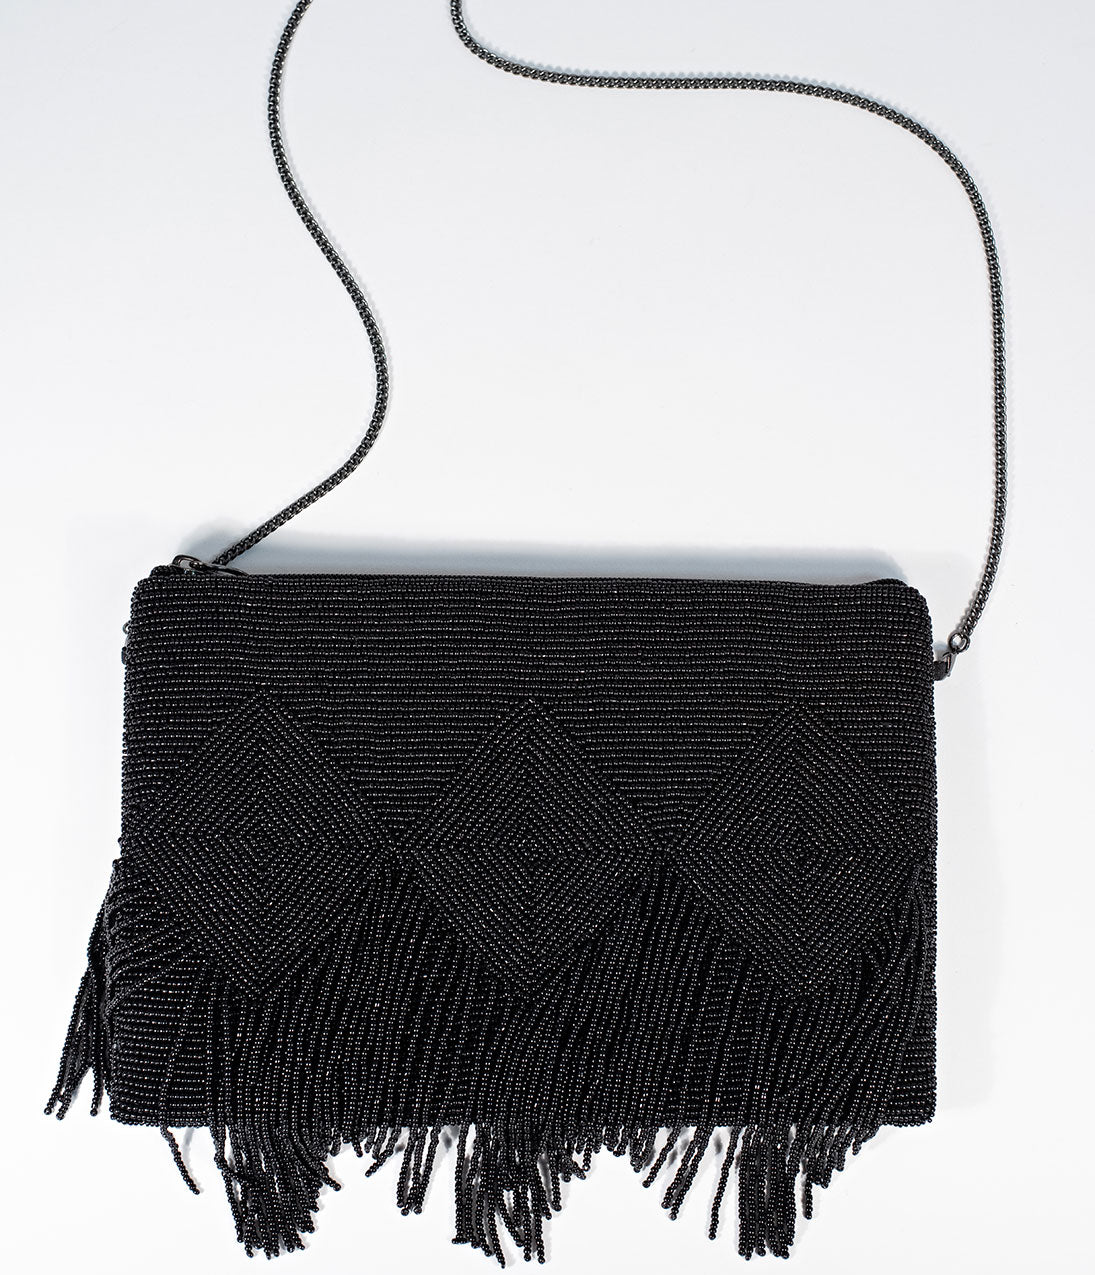 1920s Style Purses, Flapper Bags, Handbags Deco Style Black Beaded Fringe Clutch $64.00 AT vintagedancer.com